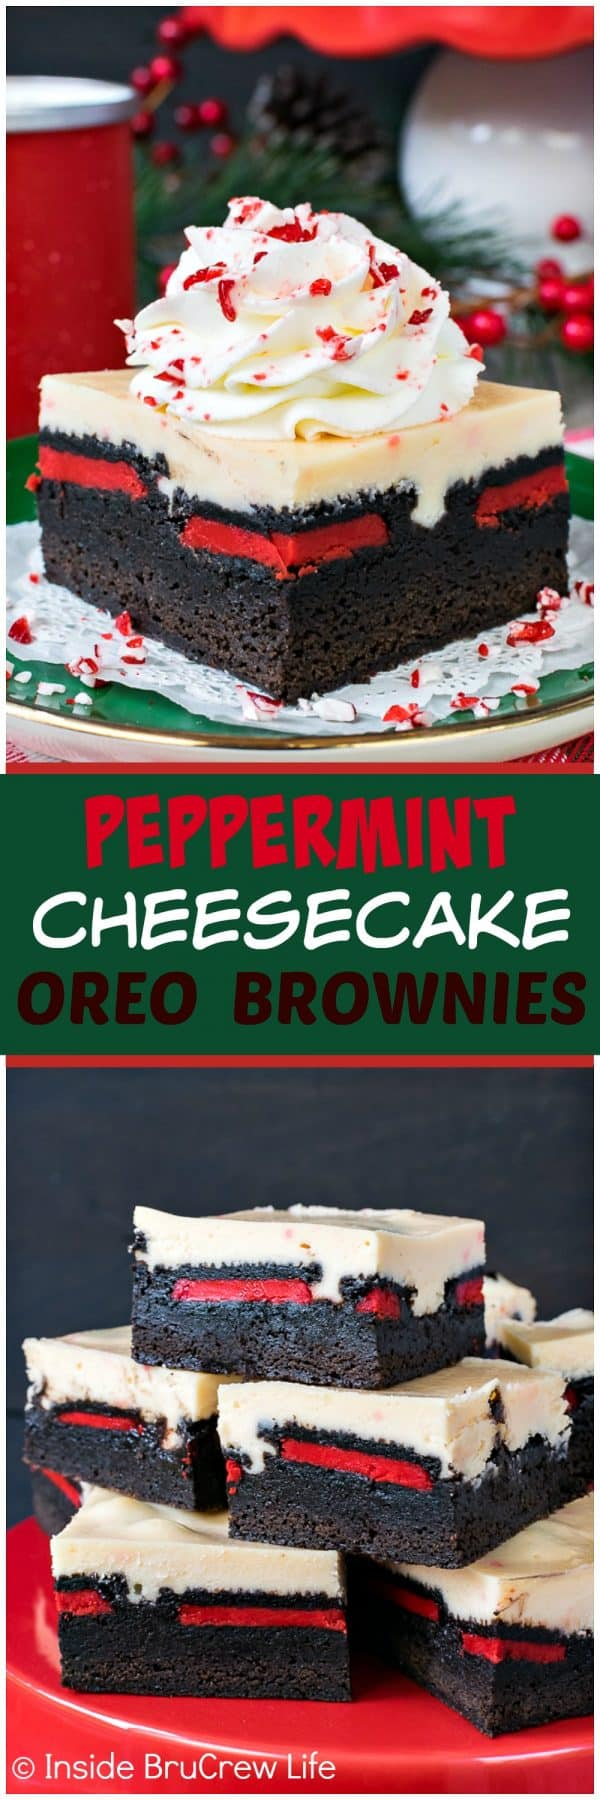 Peppermint Cheesecake Oreo Brownies - layers of homemade brownies, cookies, and cheesecake creates an amazing and delicious holiday dessert. Great recipe for Christmas parties!